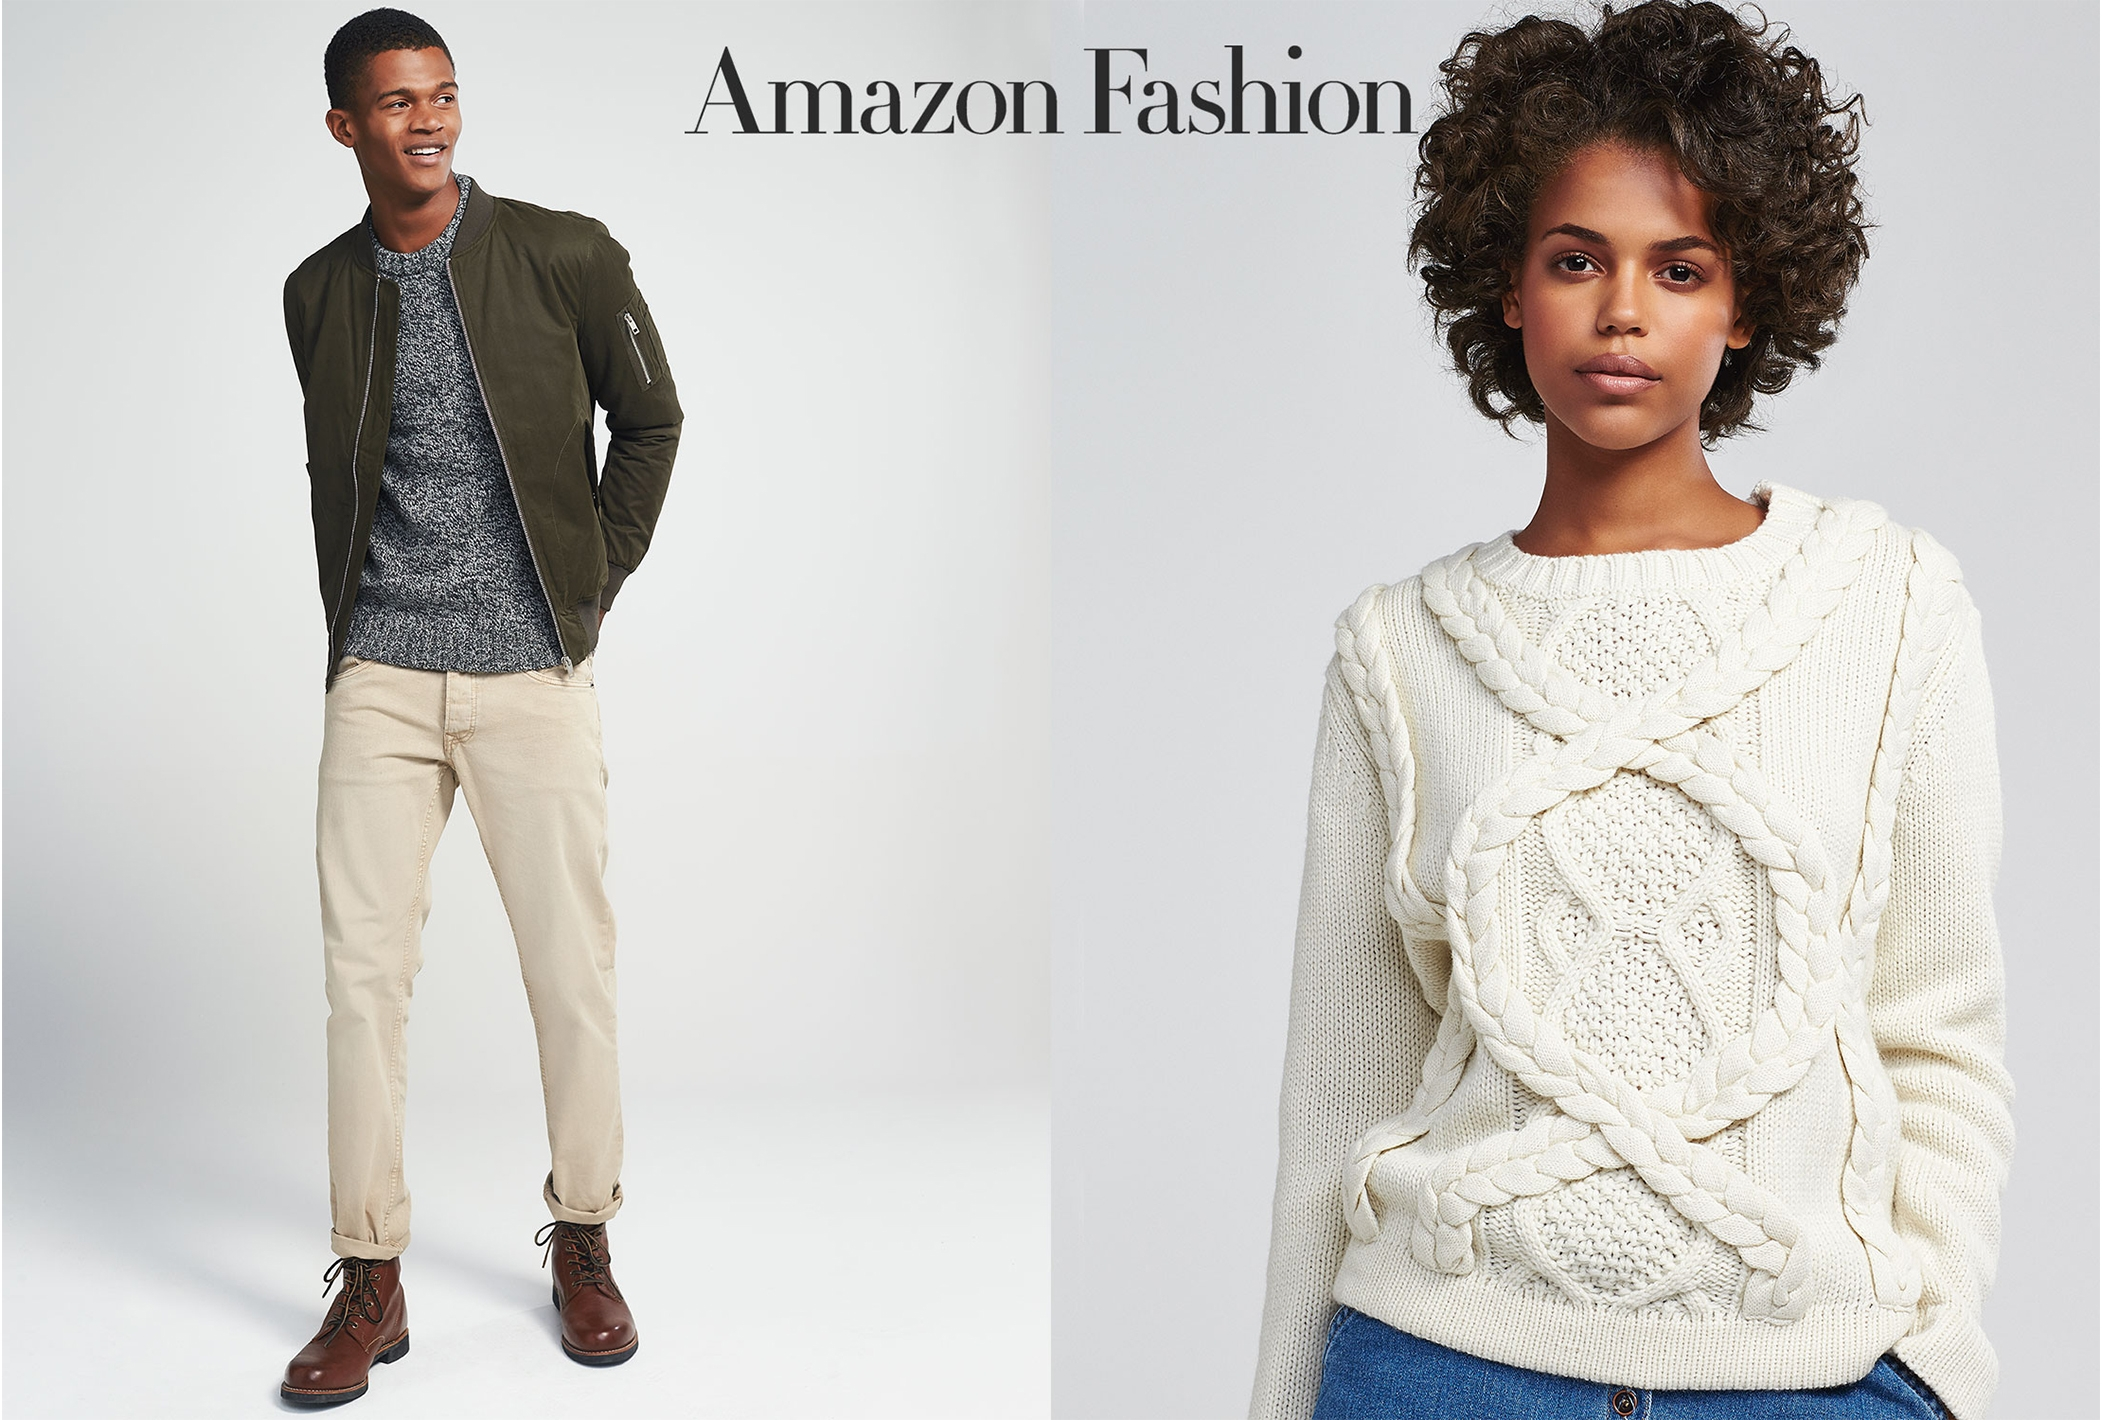 Amazon Fashion Campaign